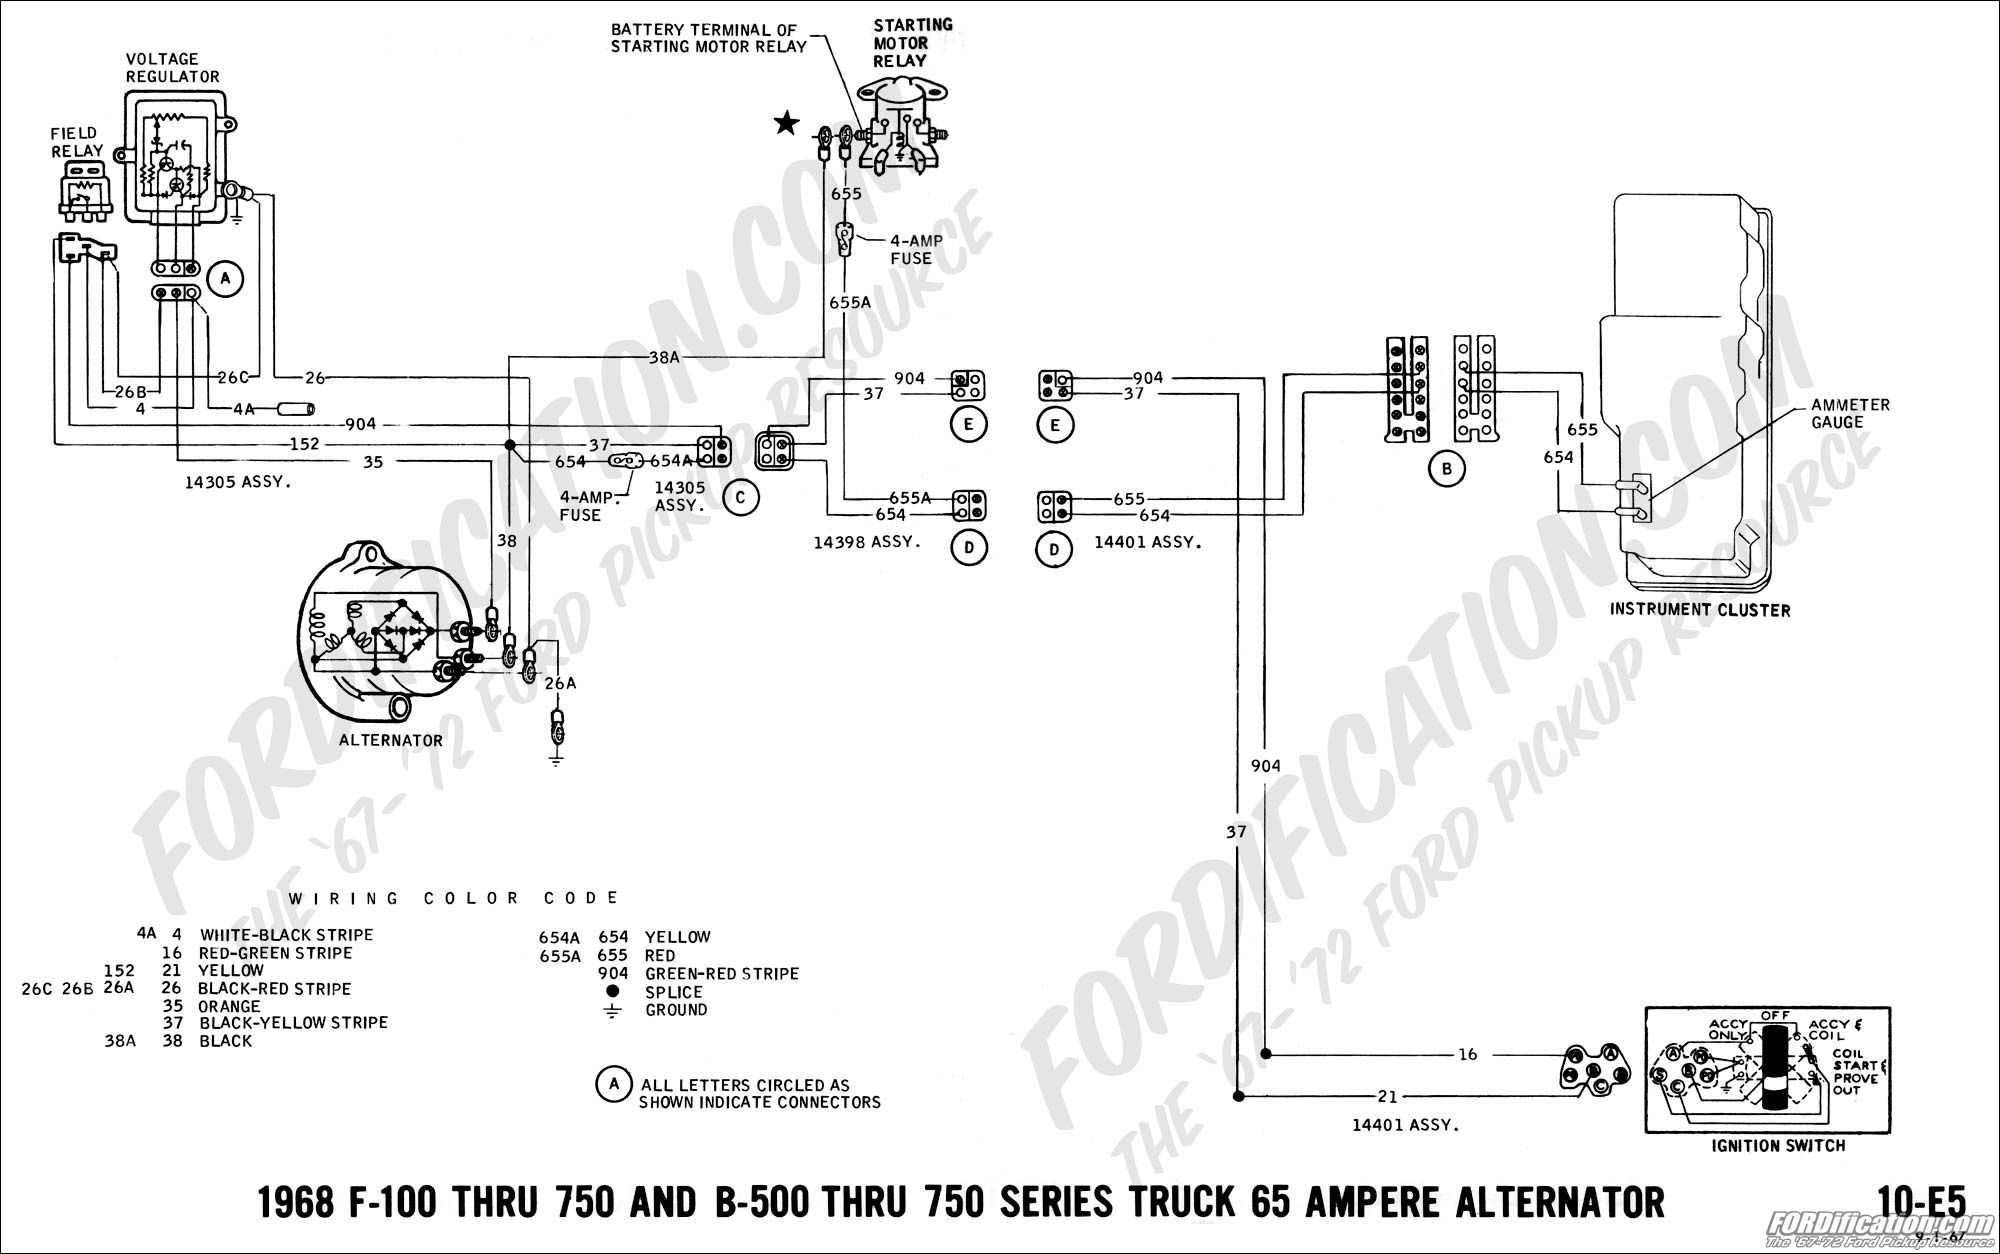 1971 mariner alternator wiring diagram 1971 ford alternator wiring